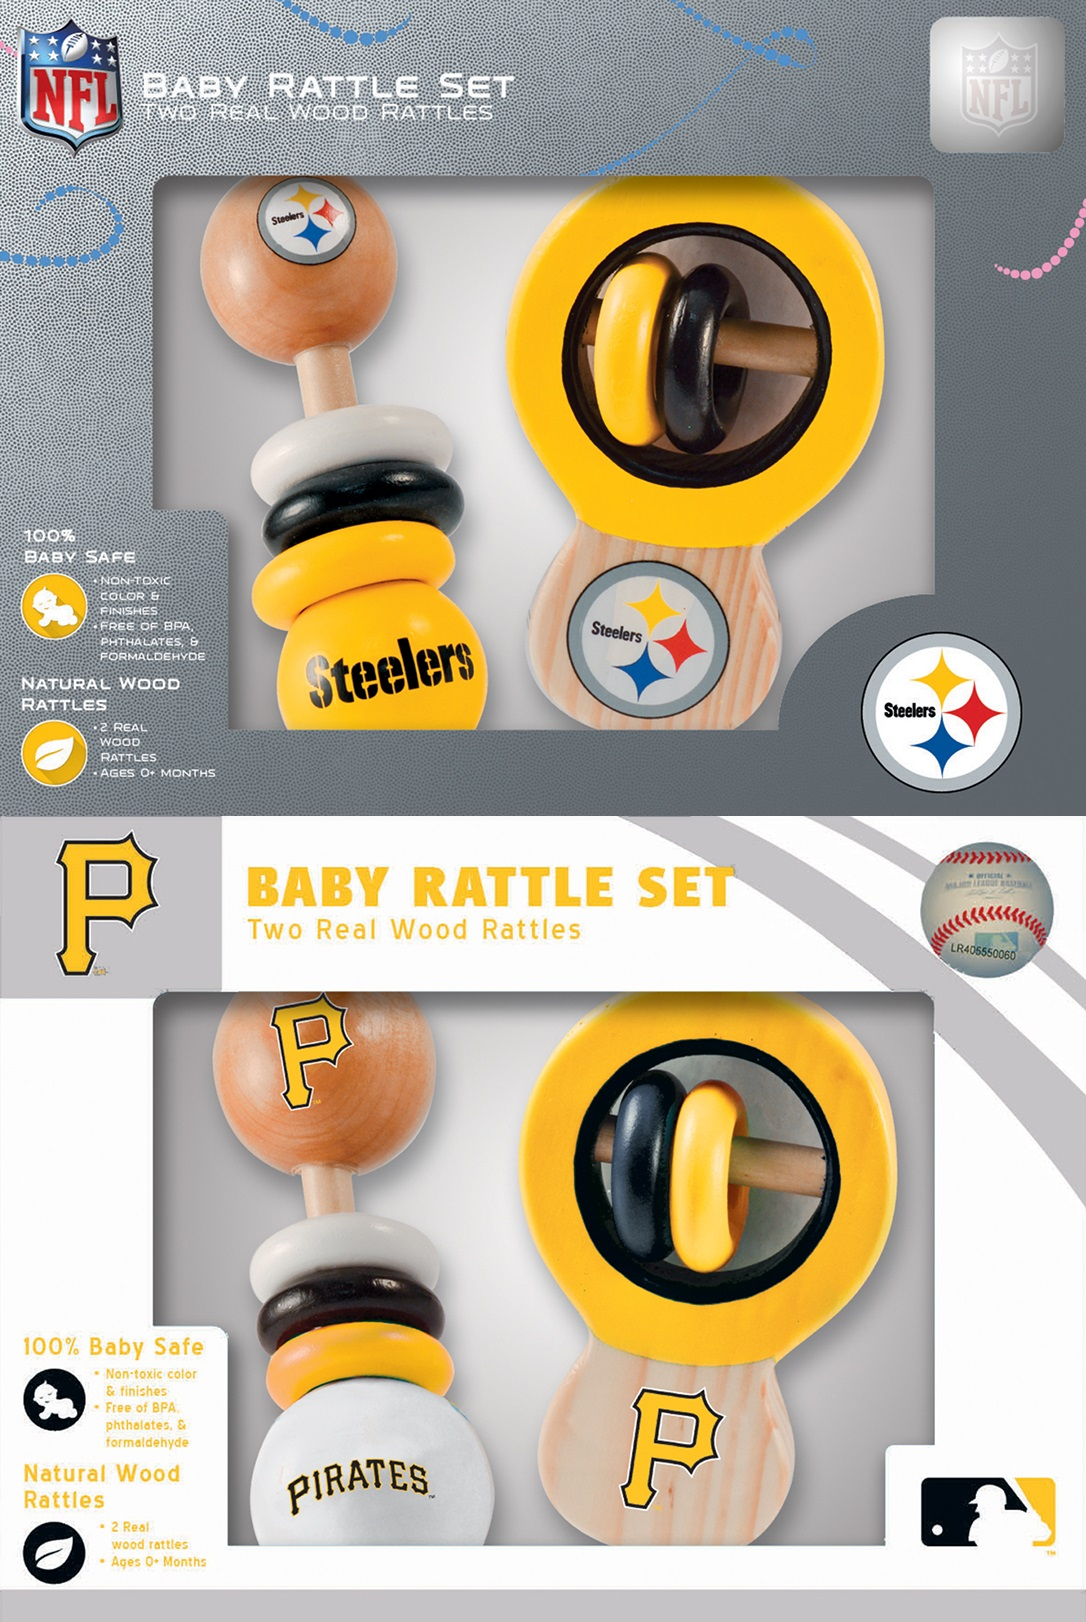 pittsburgh-steelers-pirates-baby-rattle-set